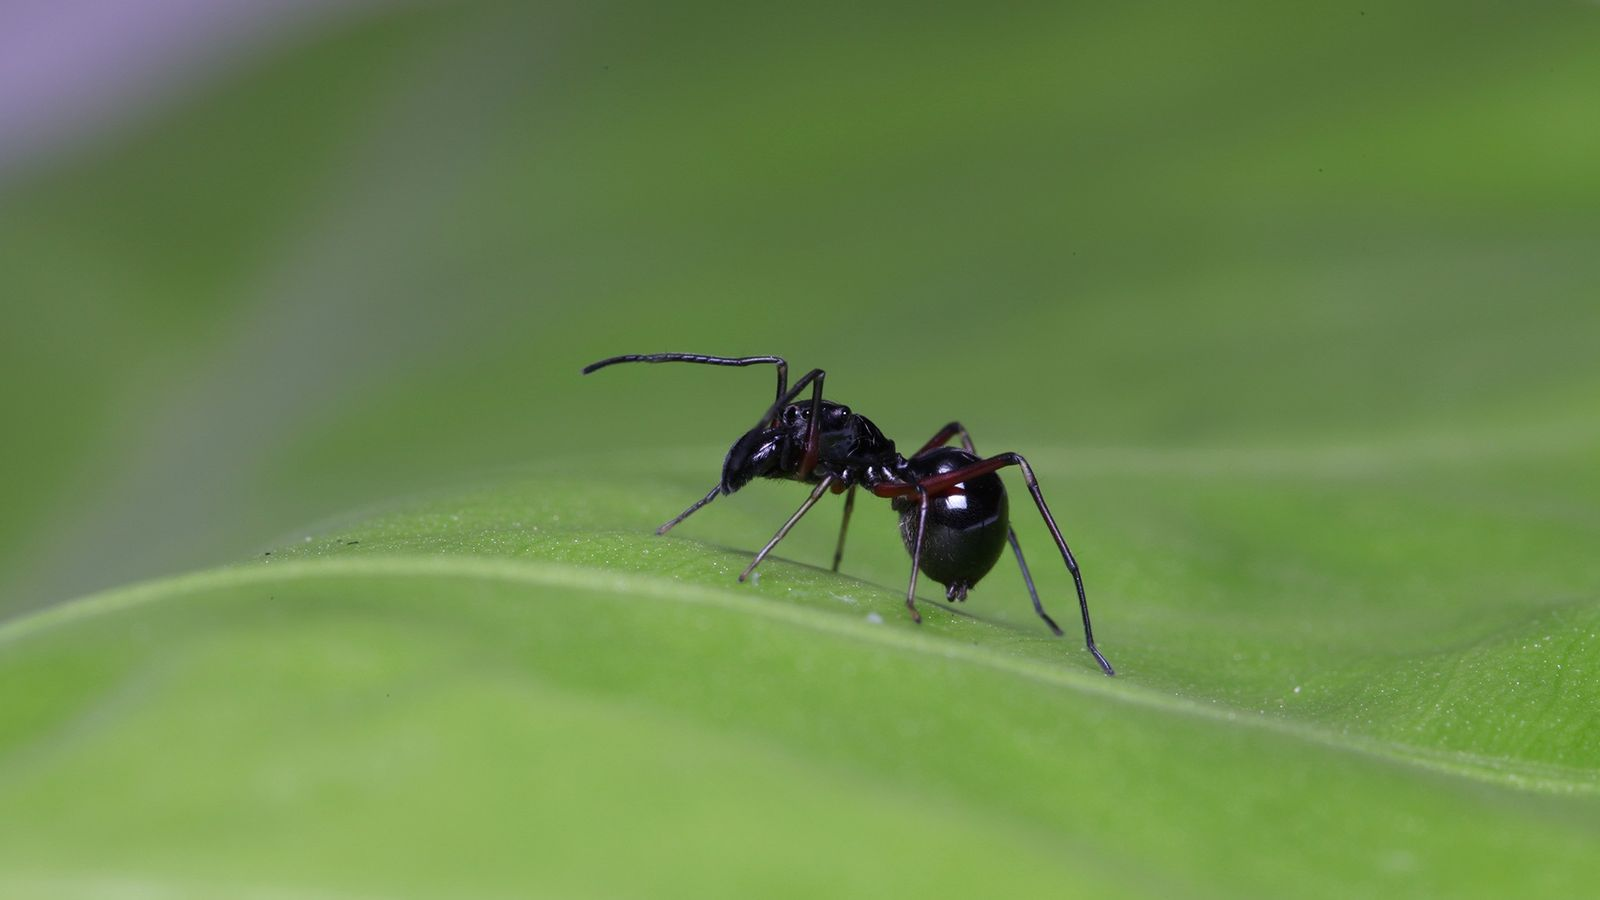 The mimicry is extremely convincing, but this is not an ant. It's an adult female ('Toxeus ...